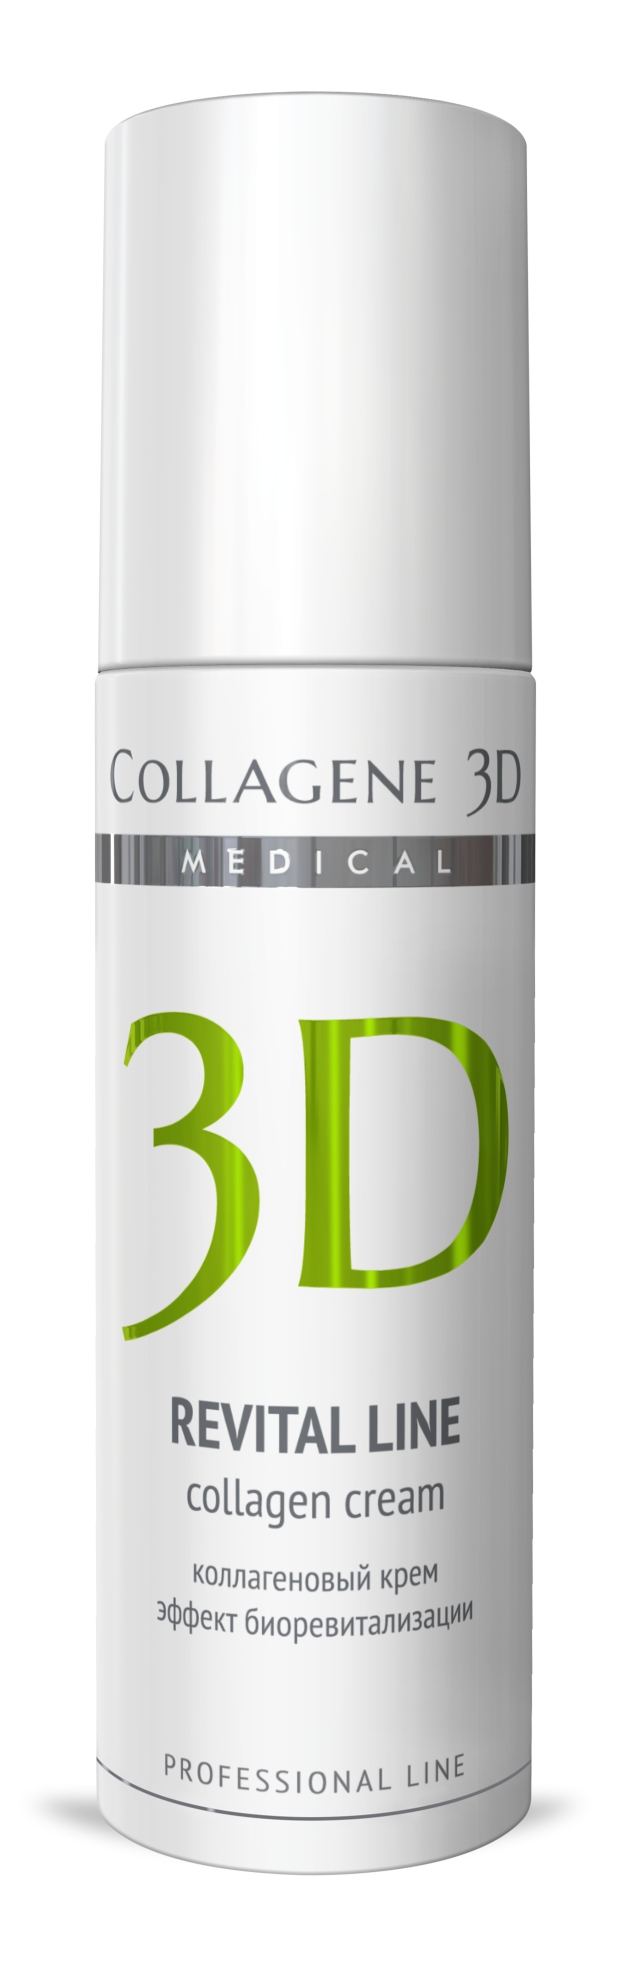 "MEDICAL COLLAGENE 3D ���� � ���������� � ����������������� ���������� ��� ���� ""Revital Line"" 150�� ����."